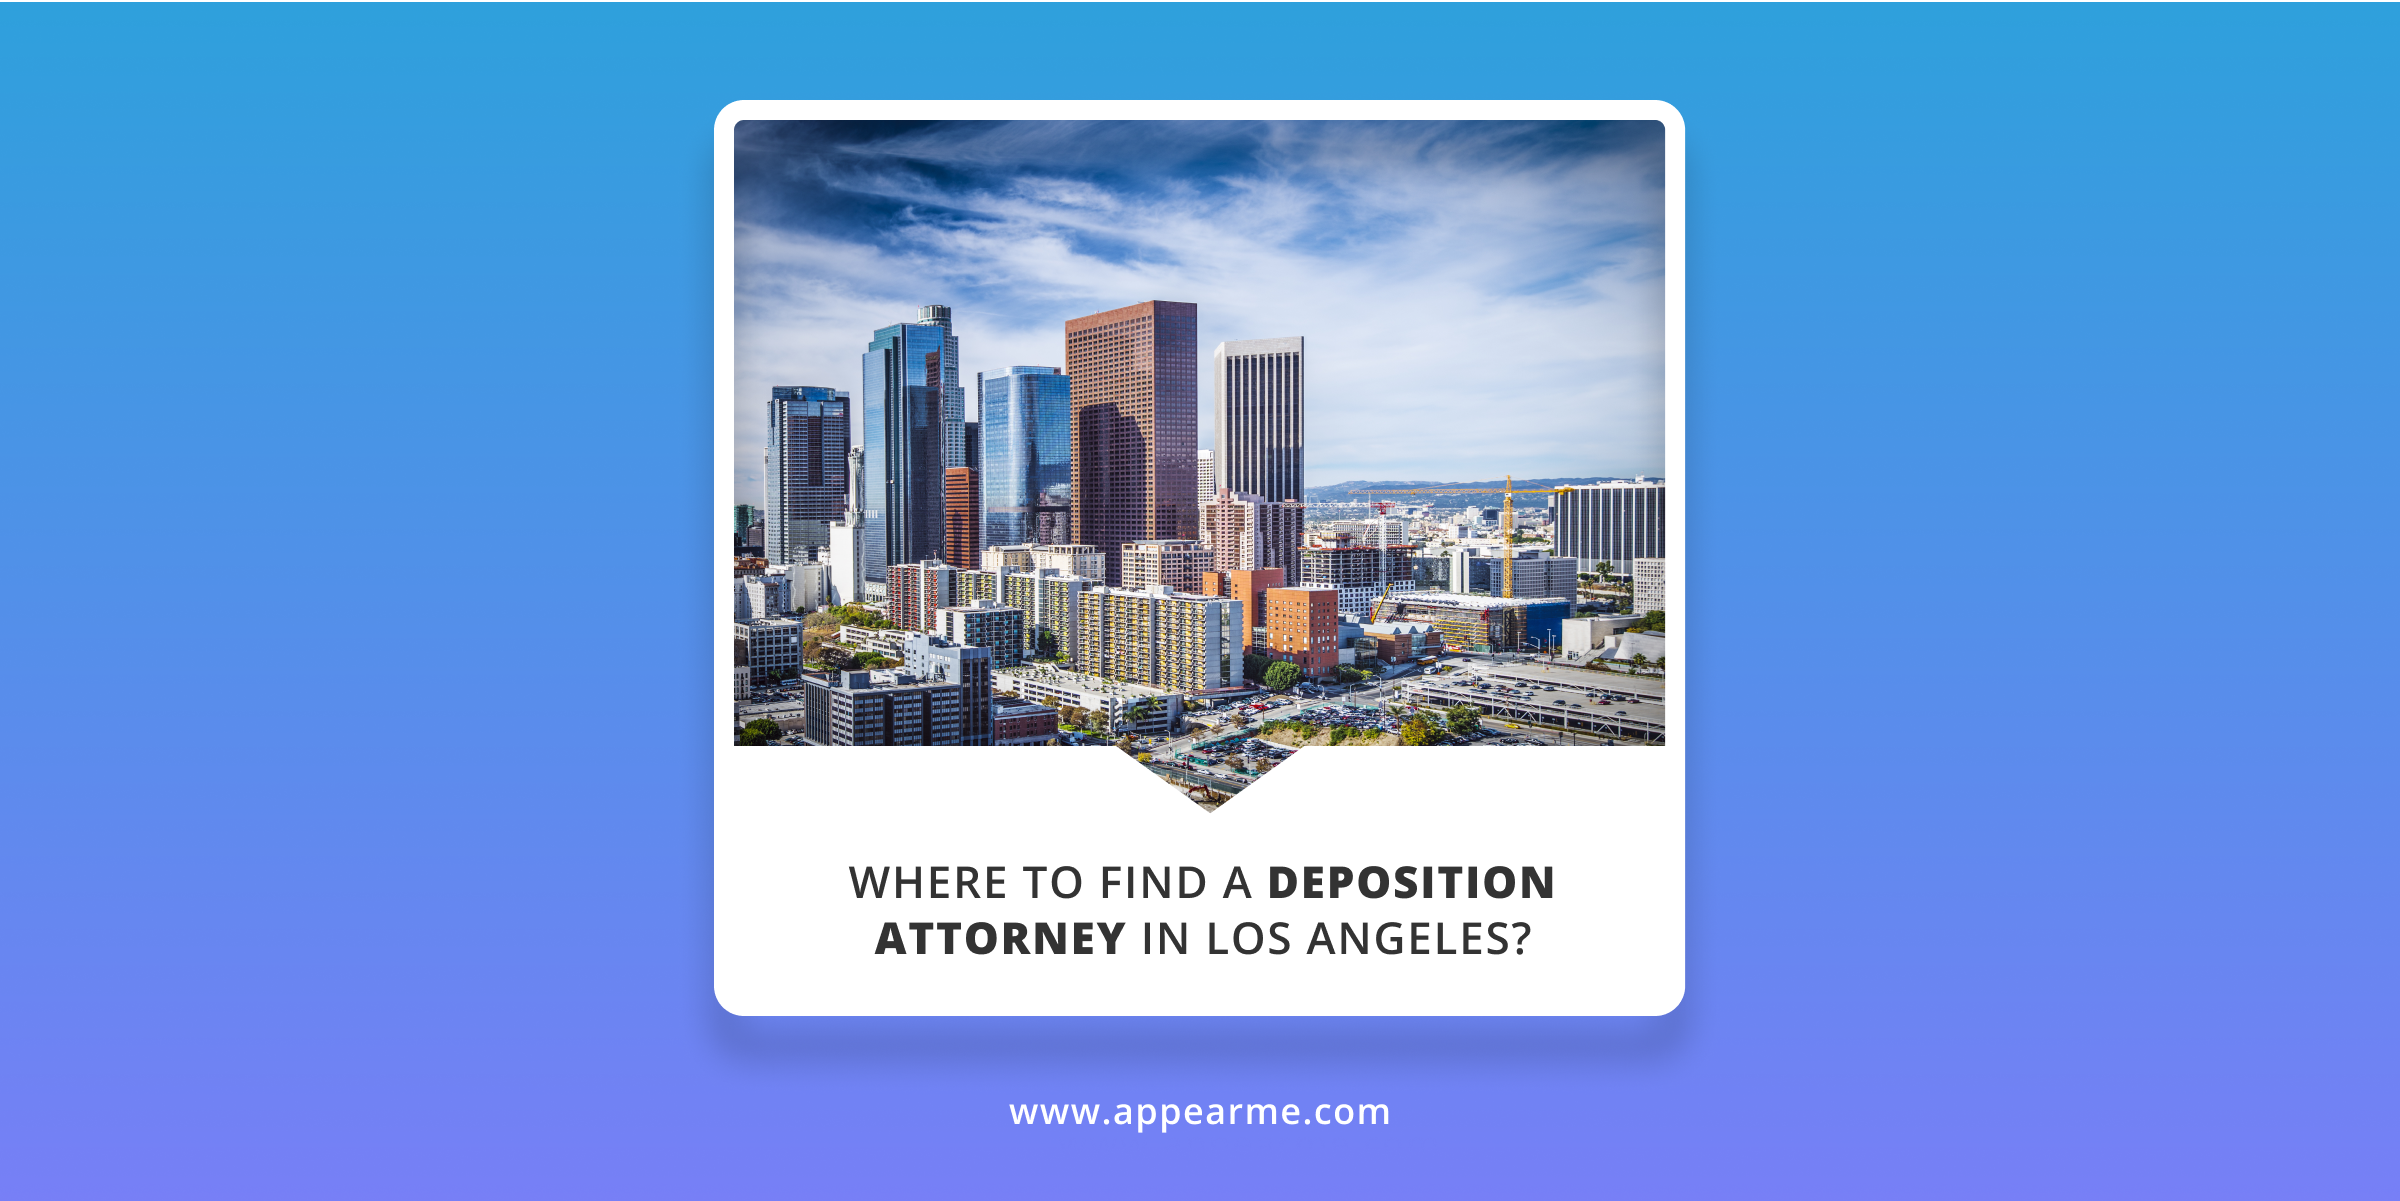 Where to Find a Deposition Attorney in Los Angeles?